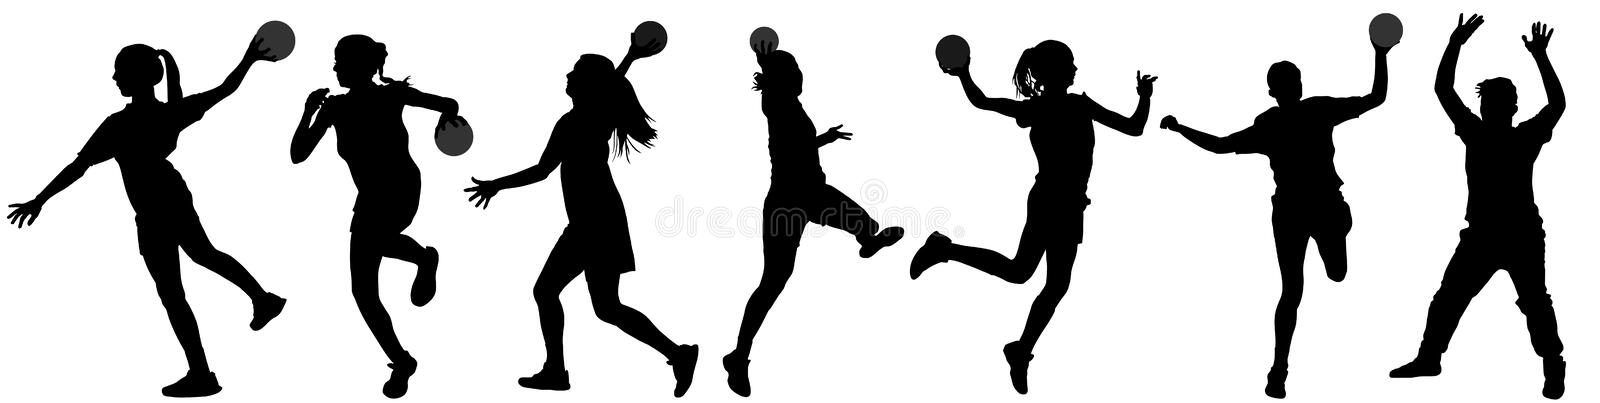 Handball player in action silhouette illustration isolated on white background. Woman handball player symbol. stock illustration